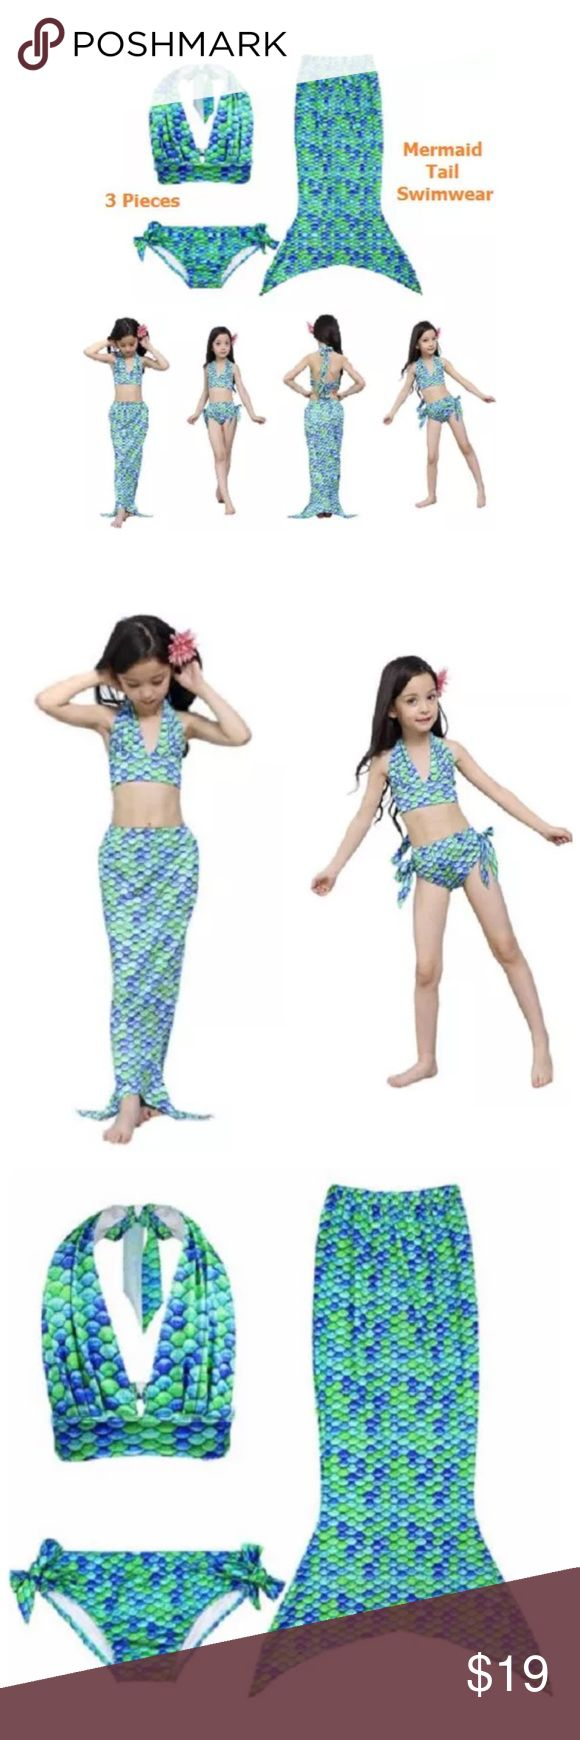 [Set] Mermaid Tail Swimwear Bikini 3 Pcs Worn once.( 1 x Top +1 x Bottom +1 x Mermaid Tail ) Size 130 Ages Advise: 7-8Years ,Bust: 54cm Top length: 23cm, Tail waist: 50cm ,Tail length: 91cm. Pefect mermaid costume make your cute girl as a real mermaid princess. Three pieces swimsuit can make little girl in different styles. High quality polyamide and elasthanne material to wear in super confort. Material: Nylon Handmade Swim